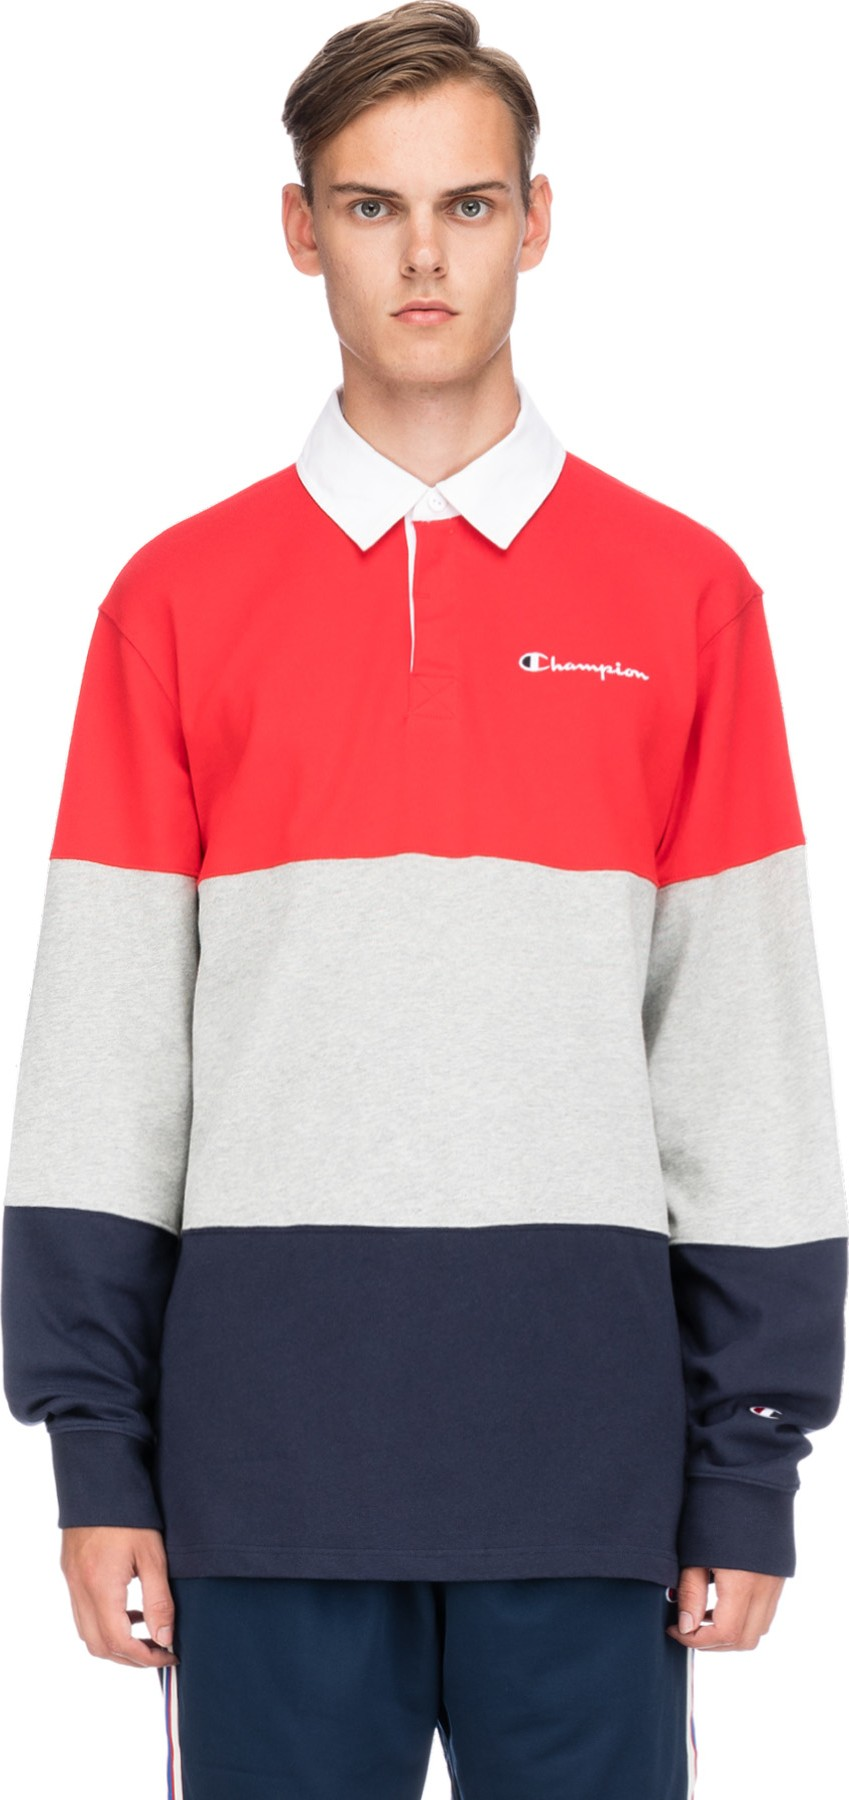 9682e7bdb30 Champion: Reverse Weave Colorblock Rugby Shirt - Scarlet/Oxford ...